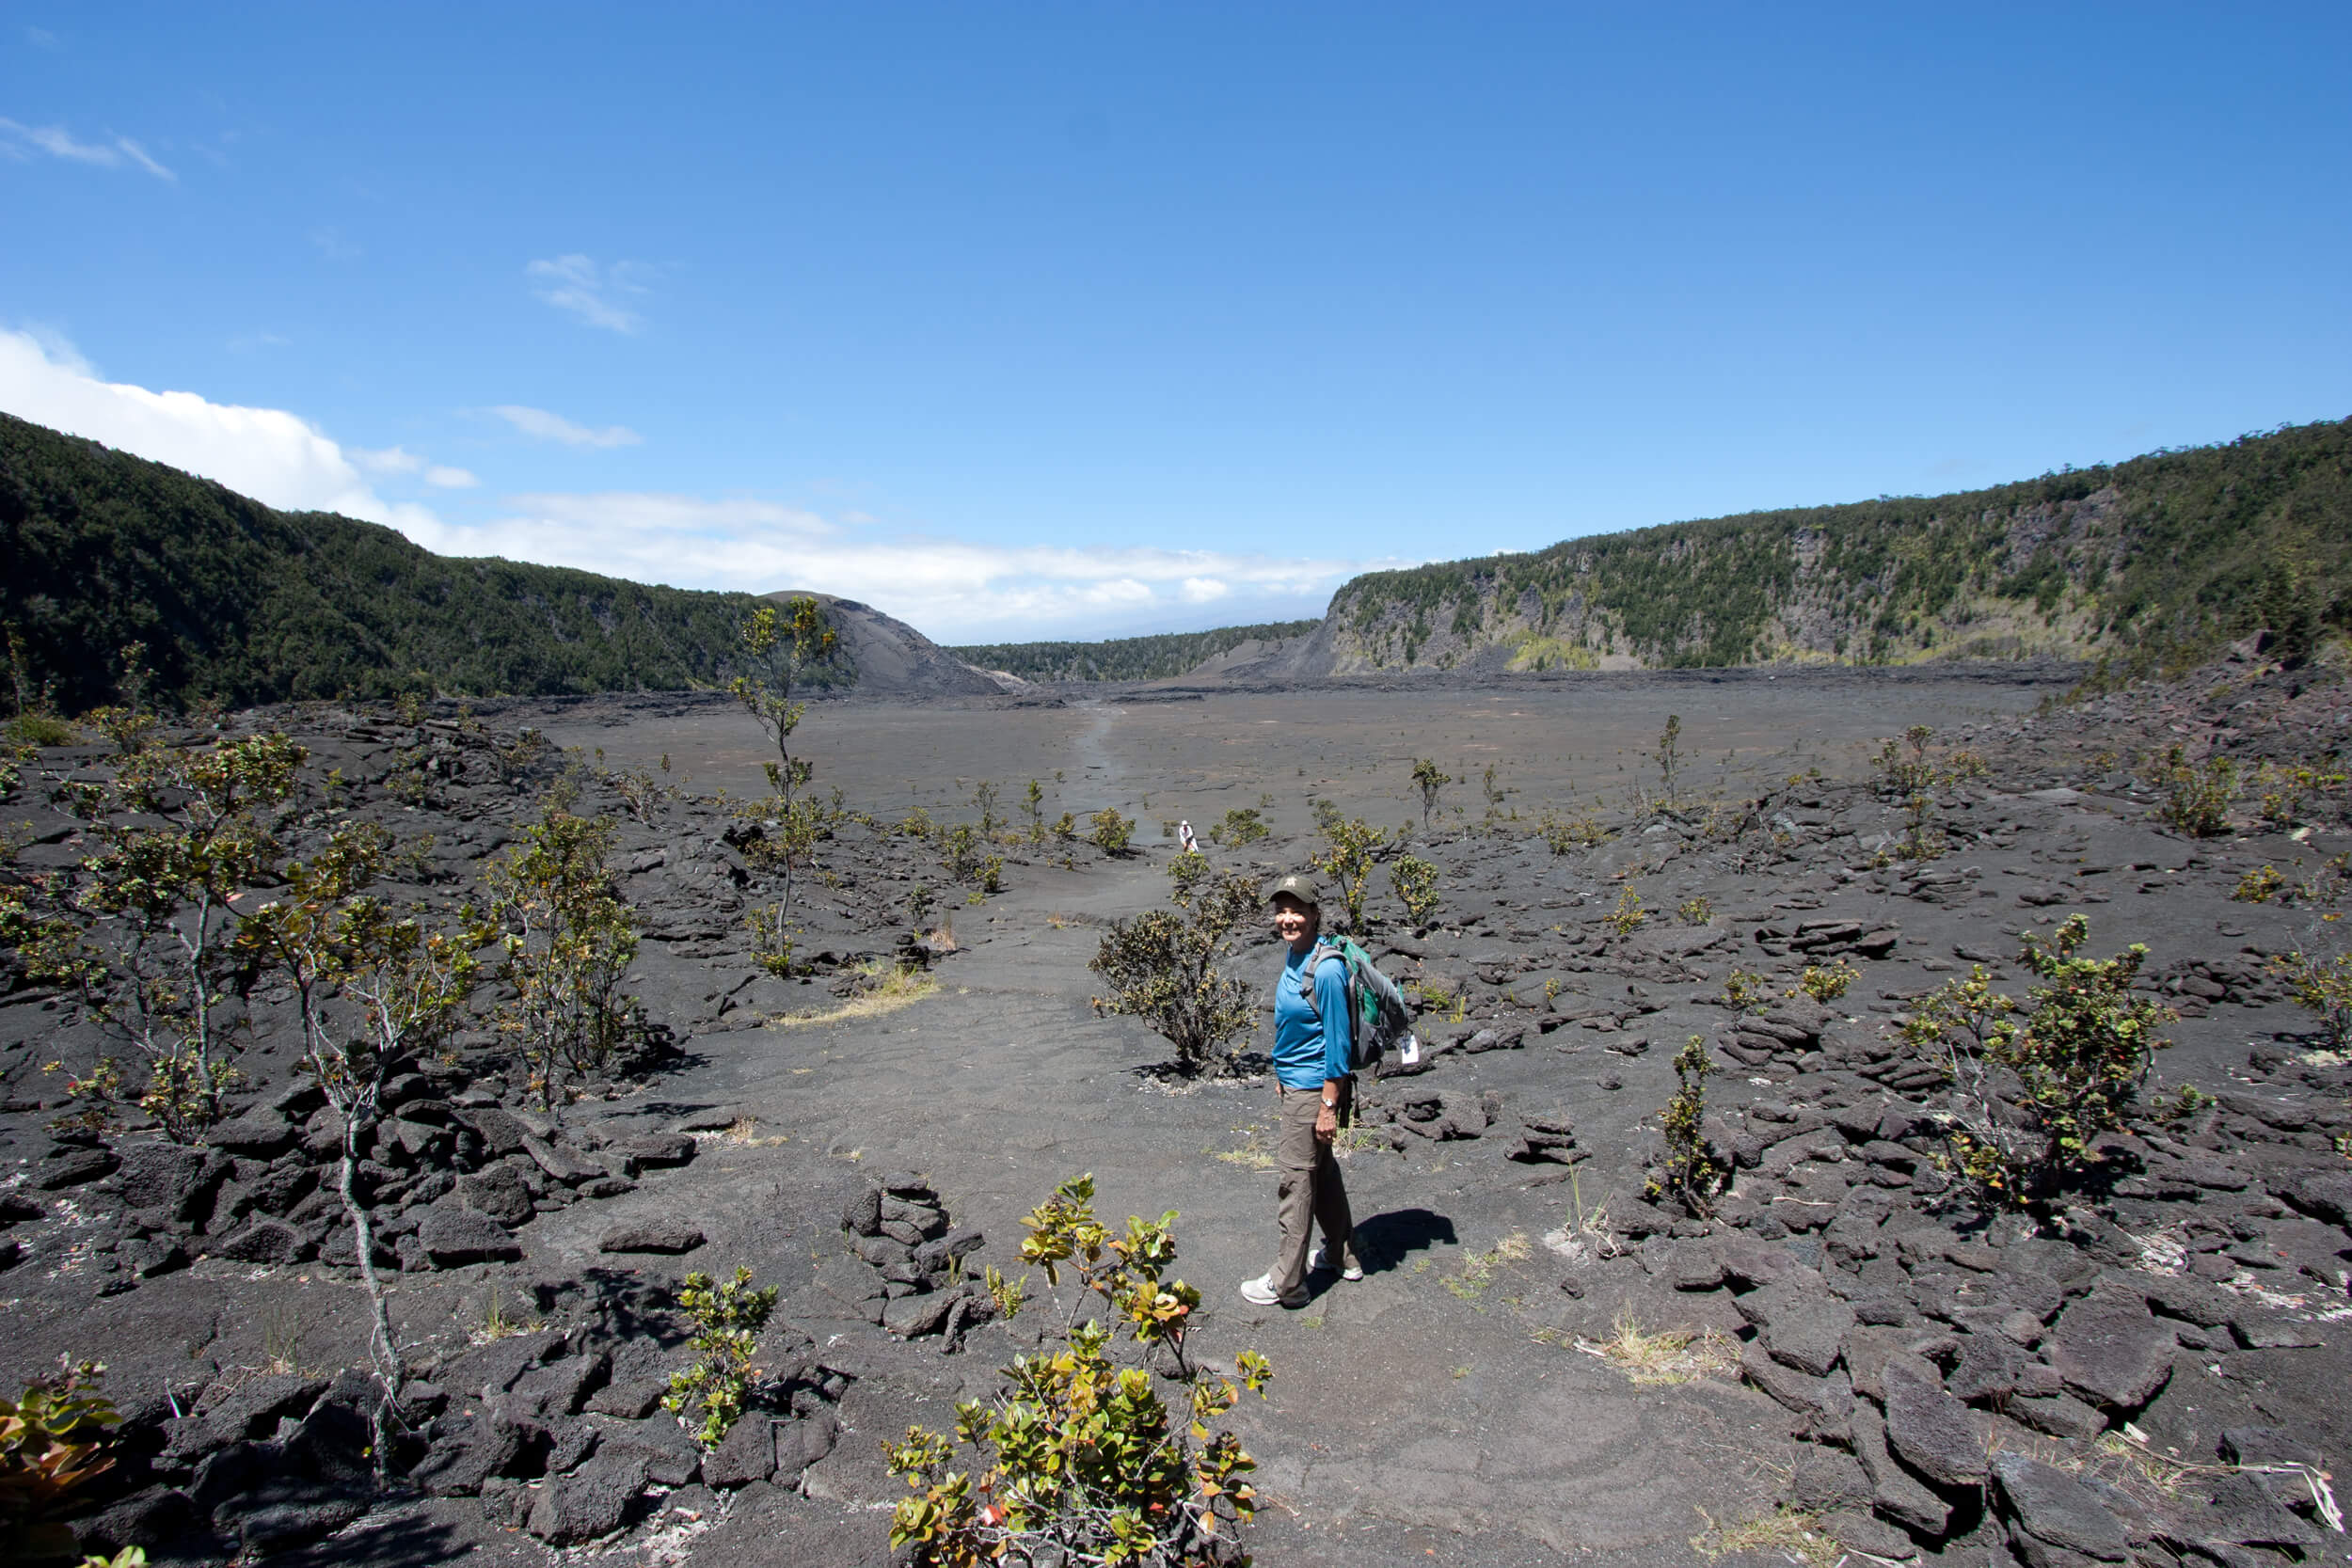 Trekking the Kilauea Iki Trail during our  31st  park visit. This hike is currently OFF LIMITS due to the current volcanic activity!